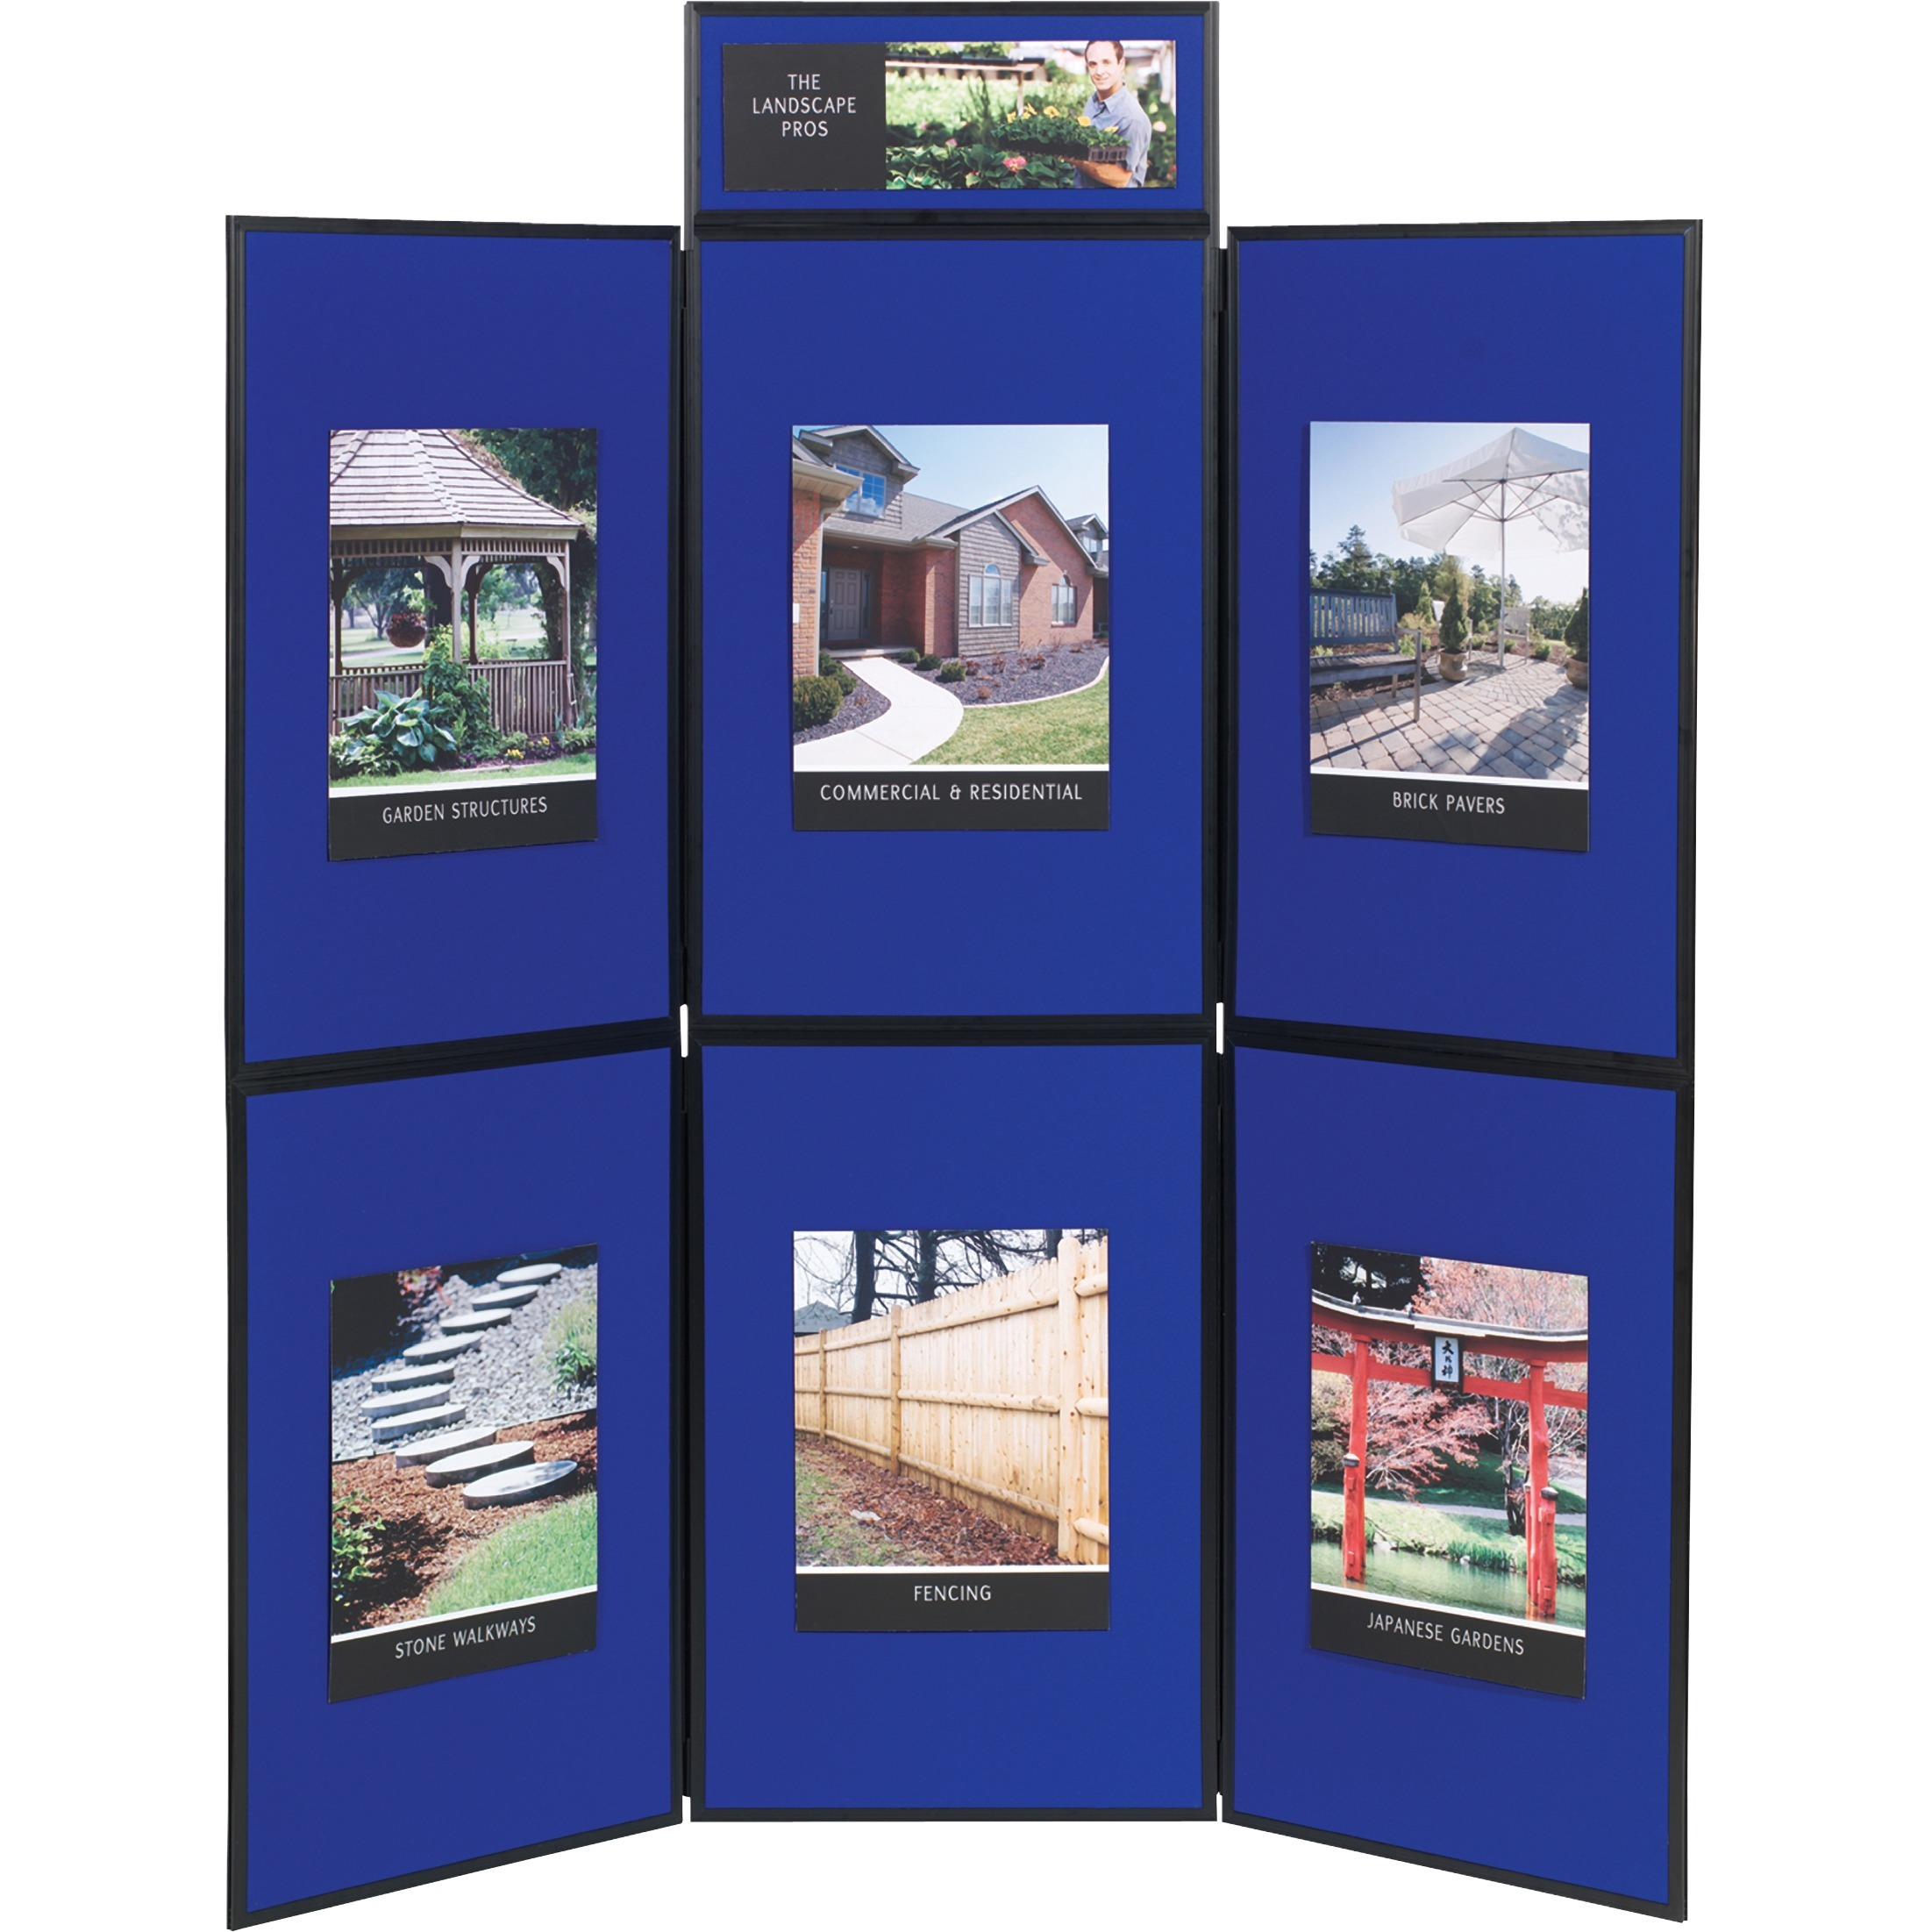 Quartet Show-It! 6-Panel Display System, 6' x 6', Double-sided, Blue/Gray